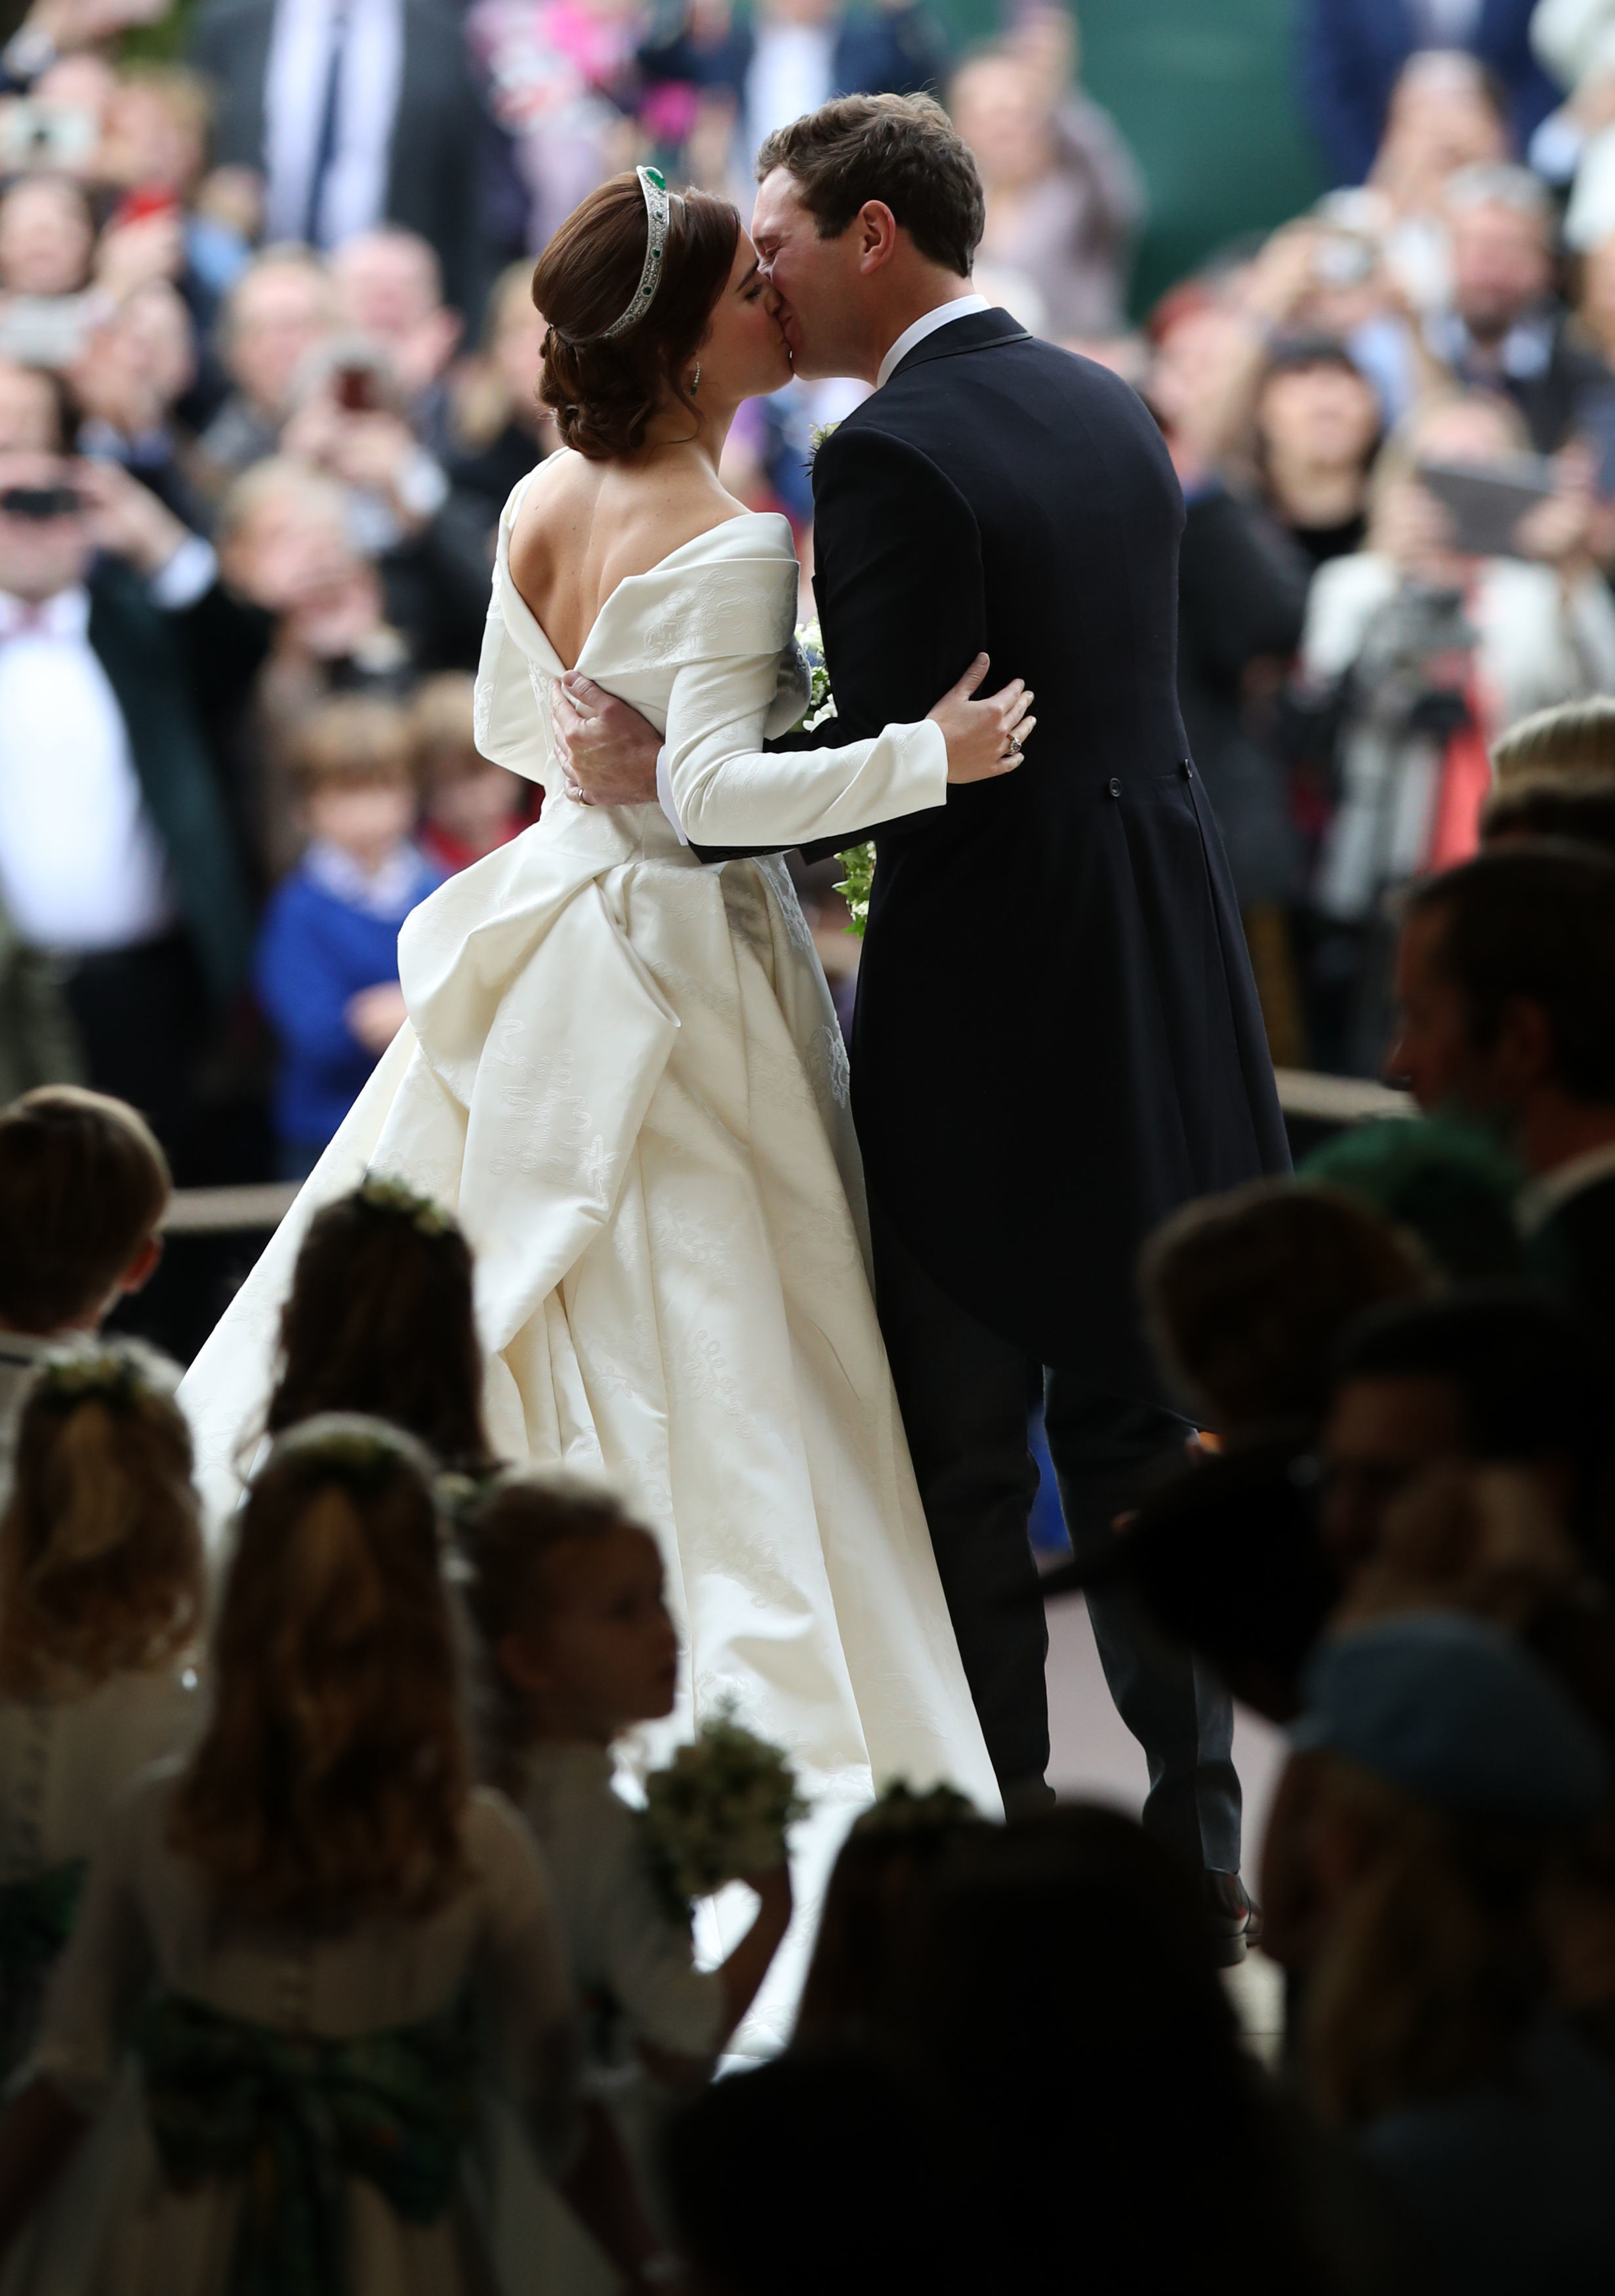 WINDSOR, ENGLAND - OCTOBER 12: Princess Eugenie of York and her new husband Jack Brooksbank kiss as they...